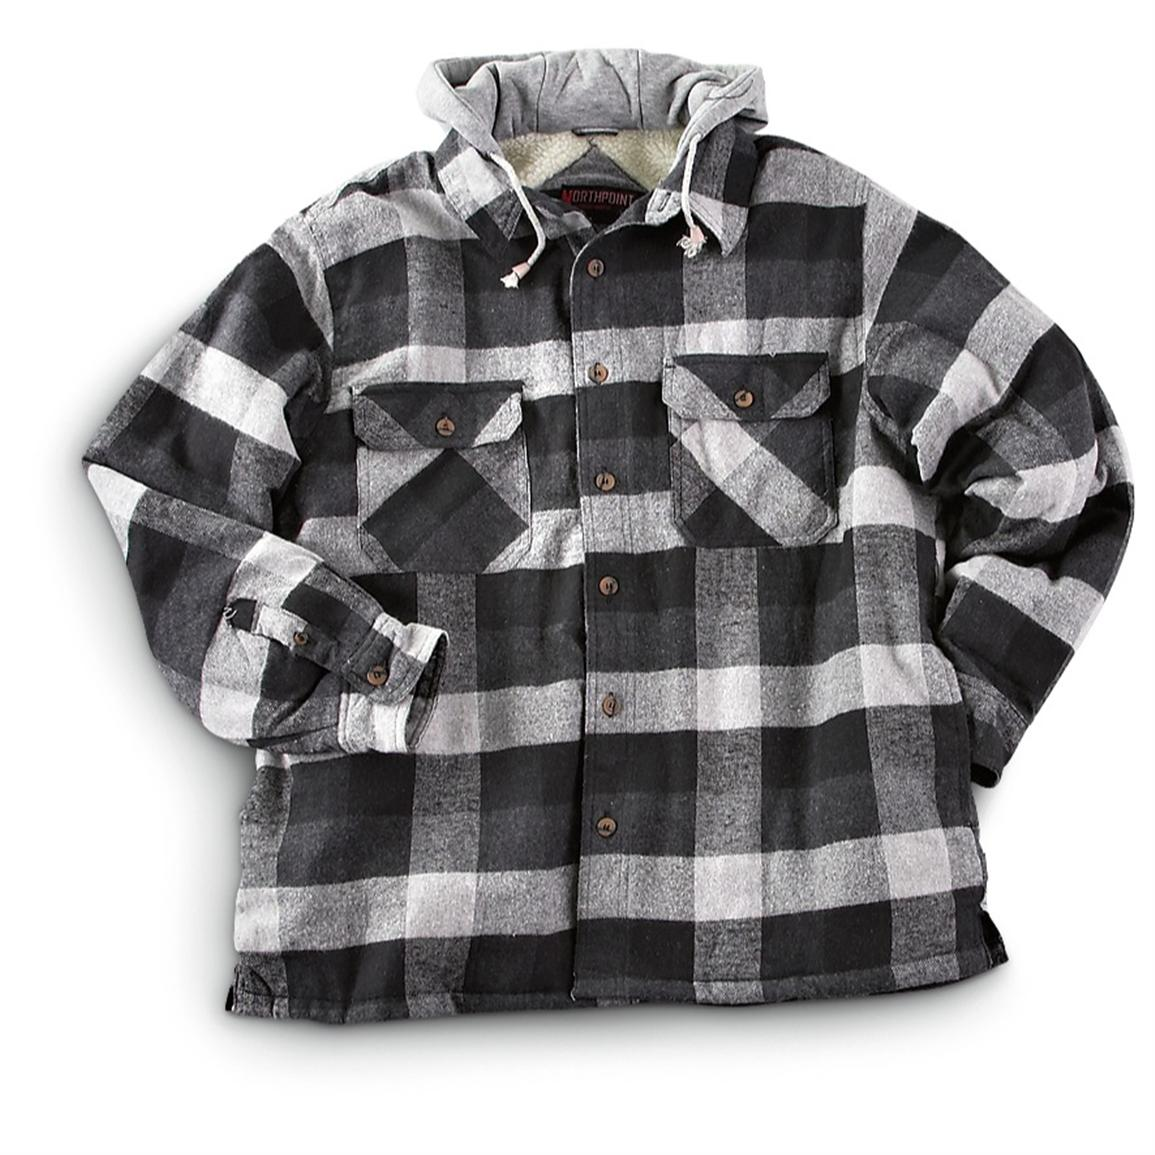 Northpoint fleece lined hooded flannel shirt jacket for Men s hooded flannel shirt jacket